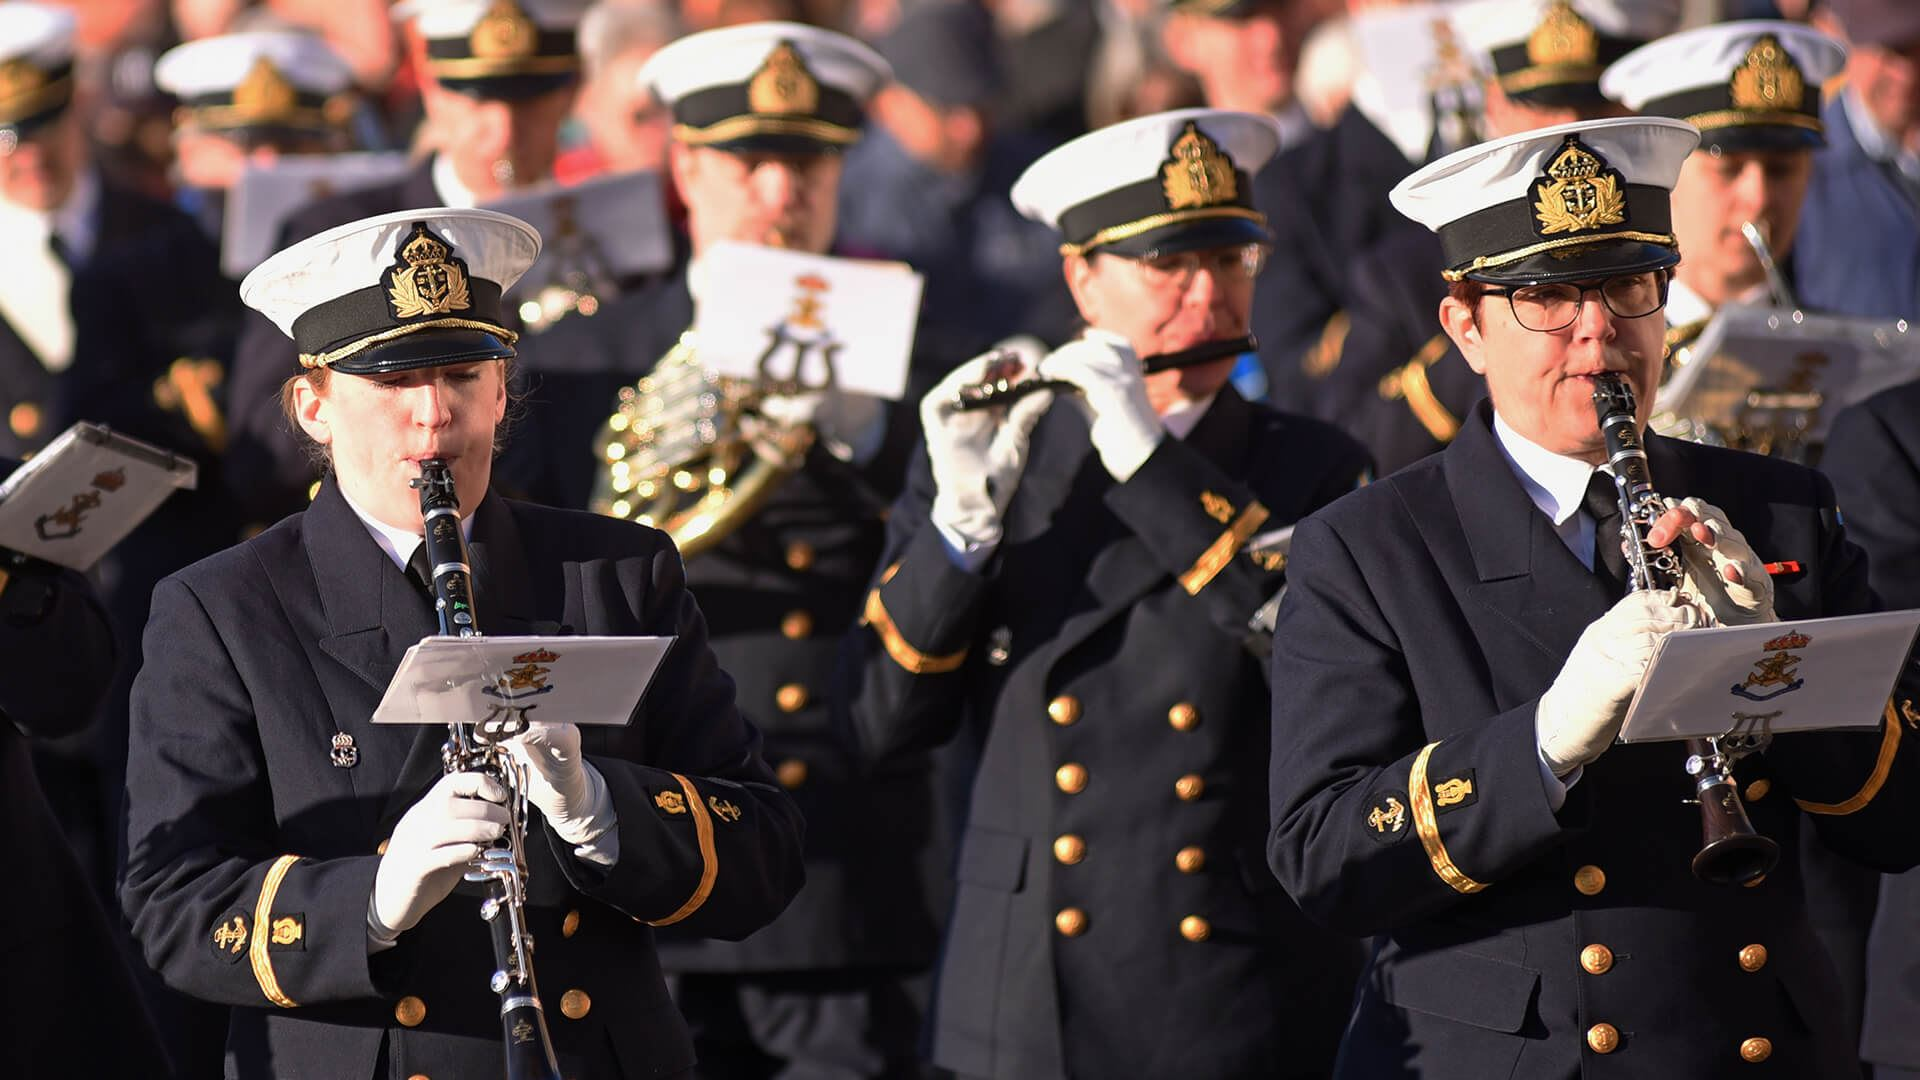 Concert with the Swedish Royal Navy Band- Marchconcert